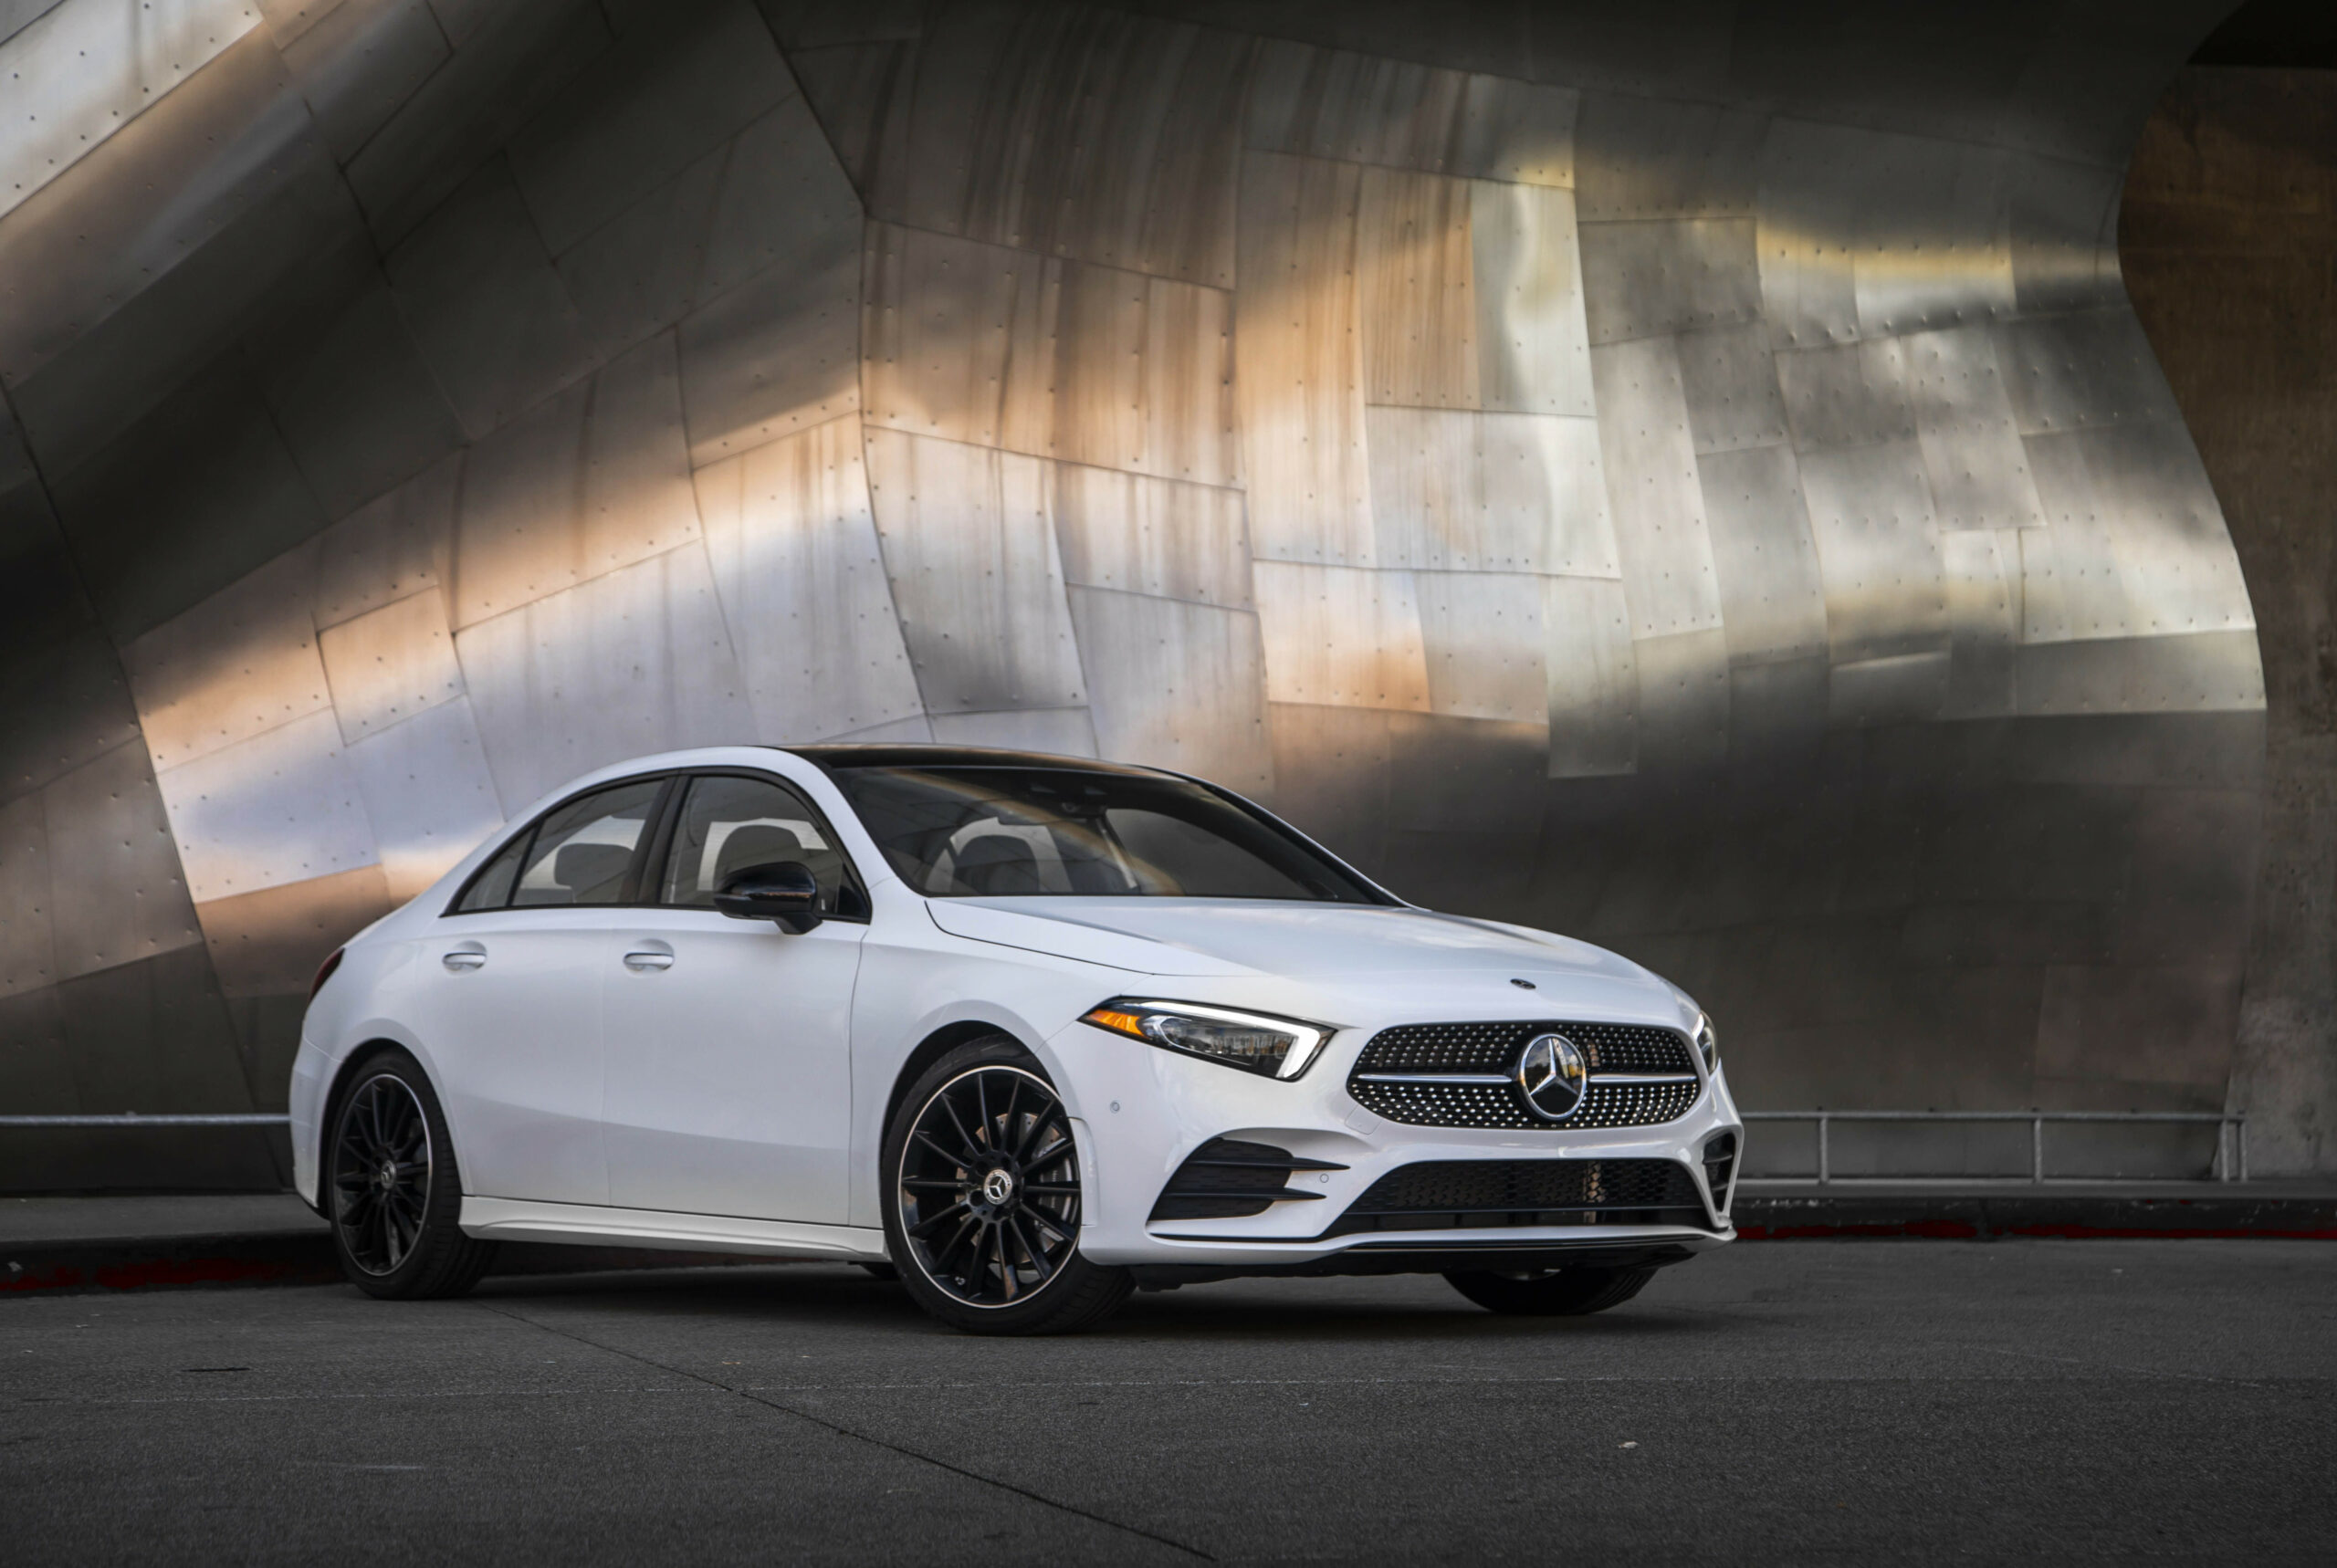 6 Mercedes-Benz A-Class Review, Pricing, and Specs - 2020 mercedes a class